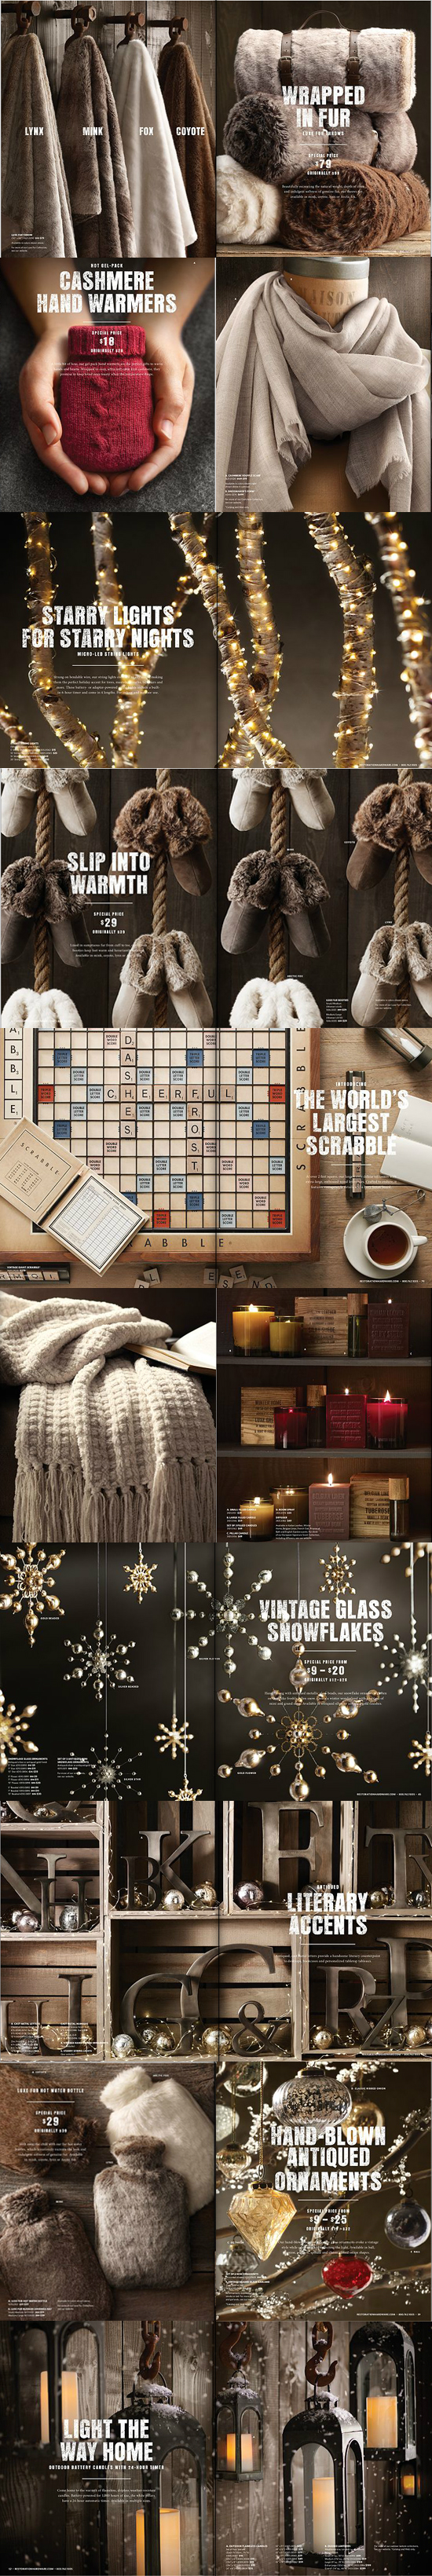 Restoration Hardware holiday warmth gifts cozy winter